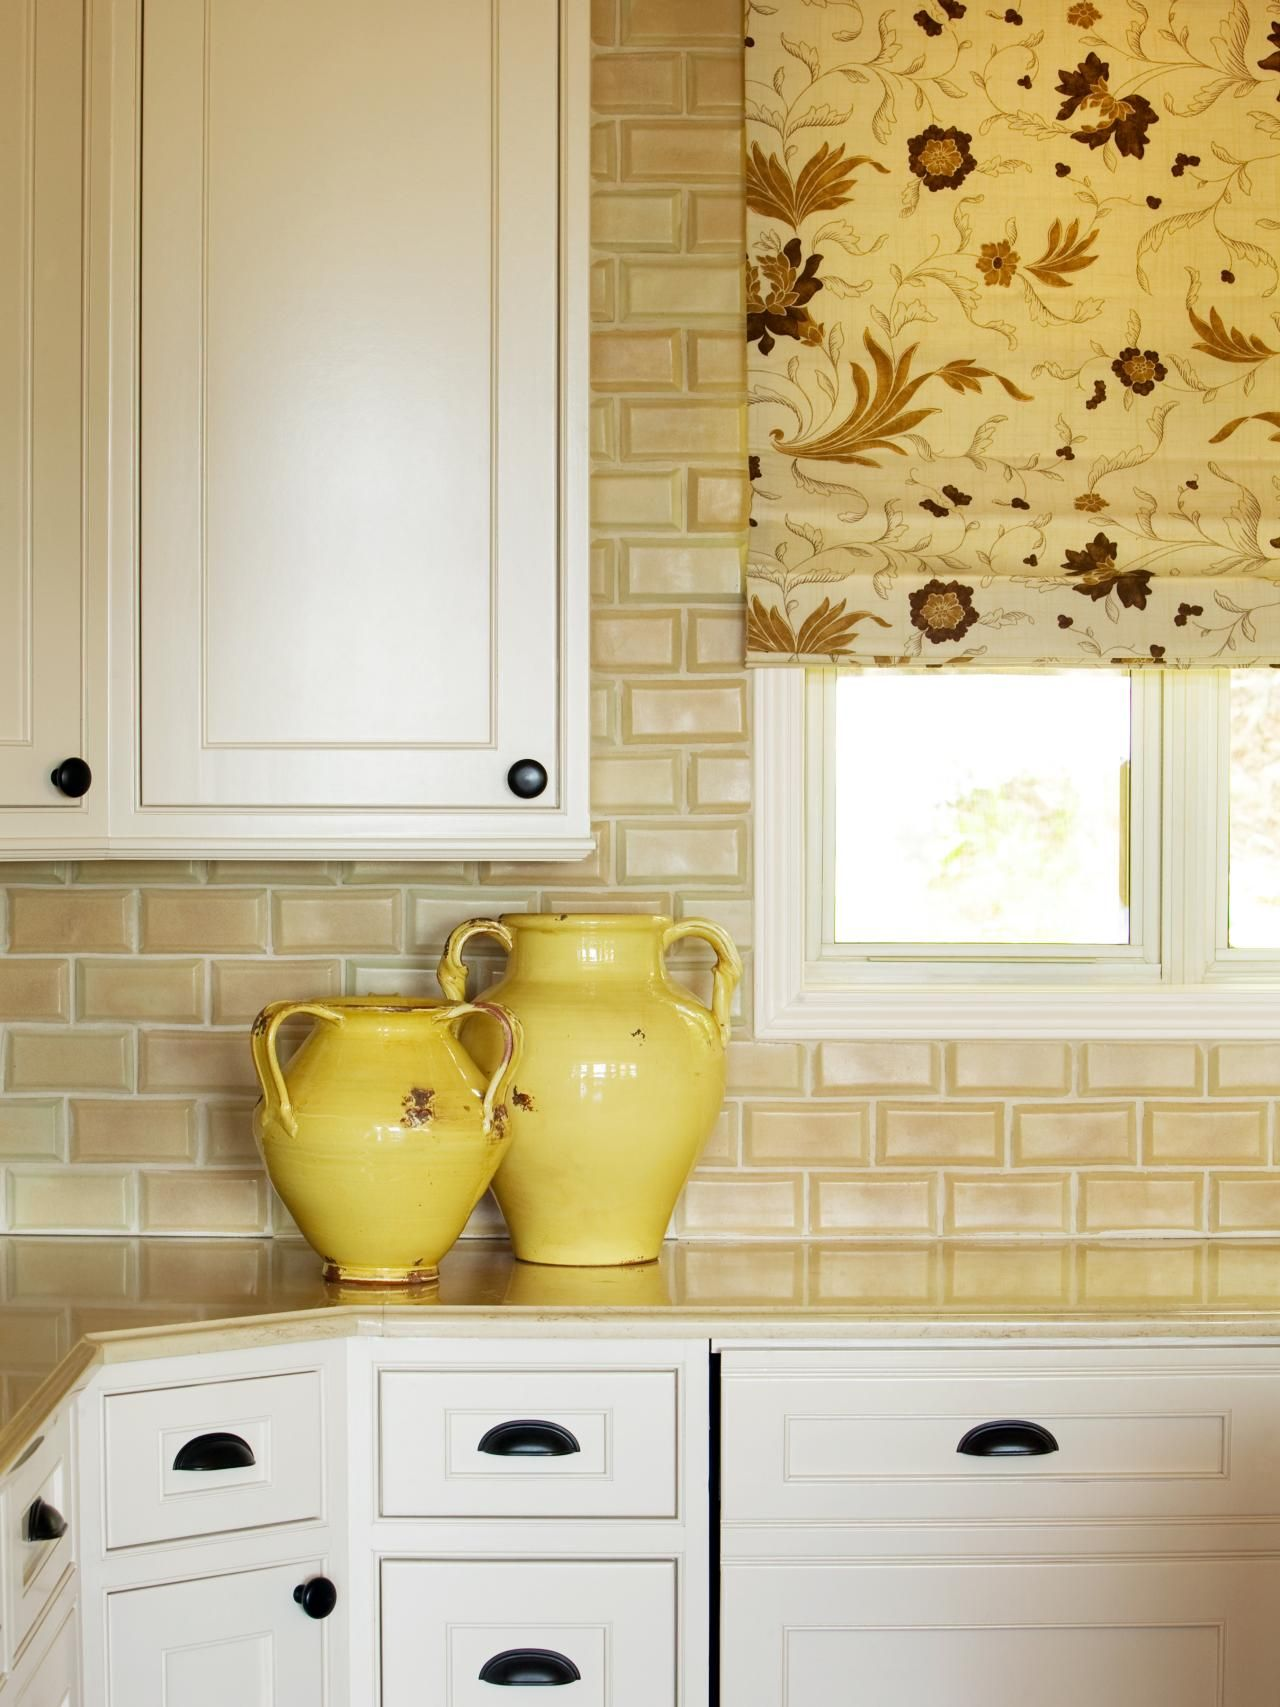 Pictures of Kitchen Backsplash Ideas From | Pinterest | Subway tile ...